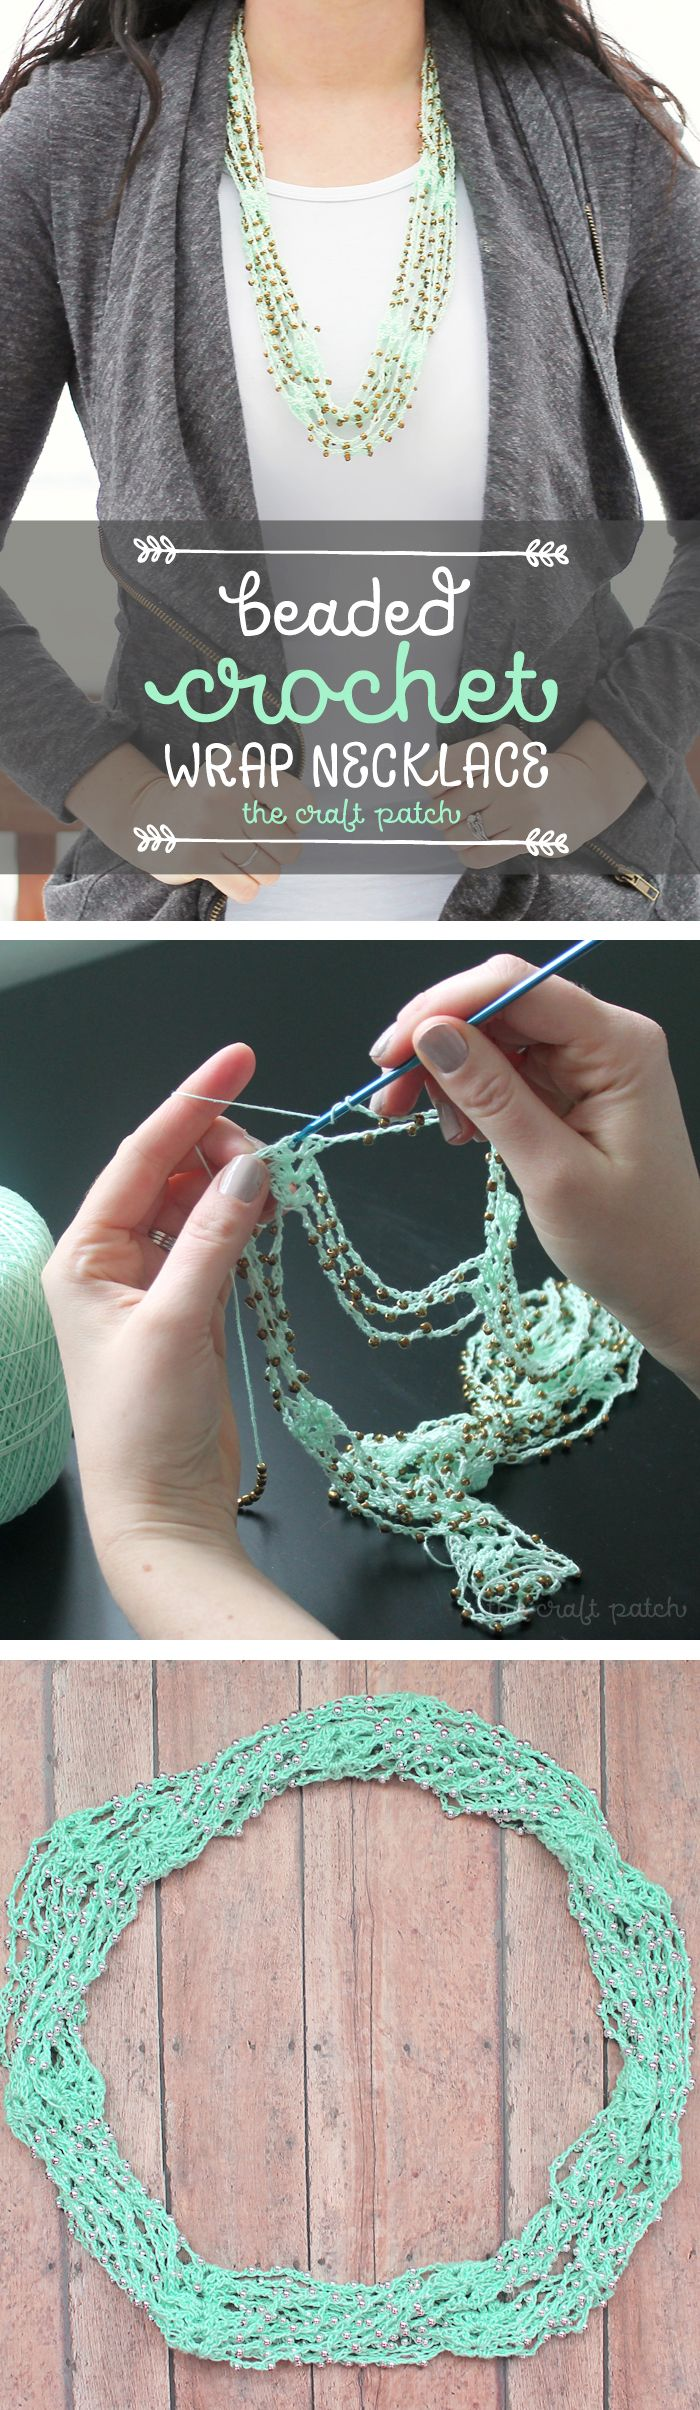 Find This Pin And More On Crochet And Knitting